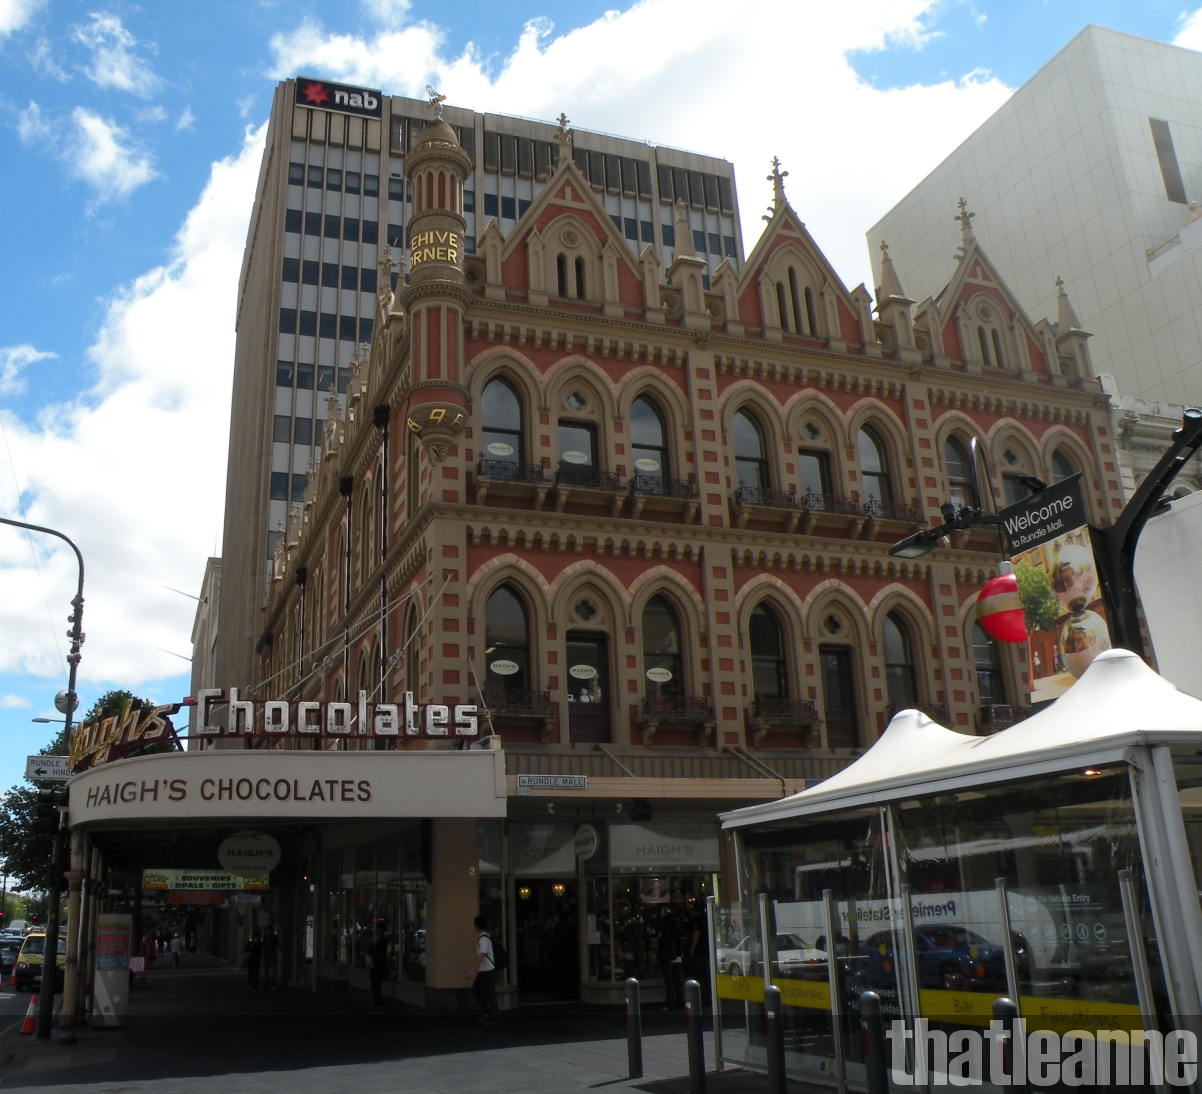 Christmas Lights Shop Adelaide: Thatleanne: My Adelaide Trip And Haul In Pictures